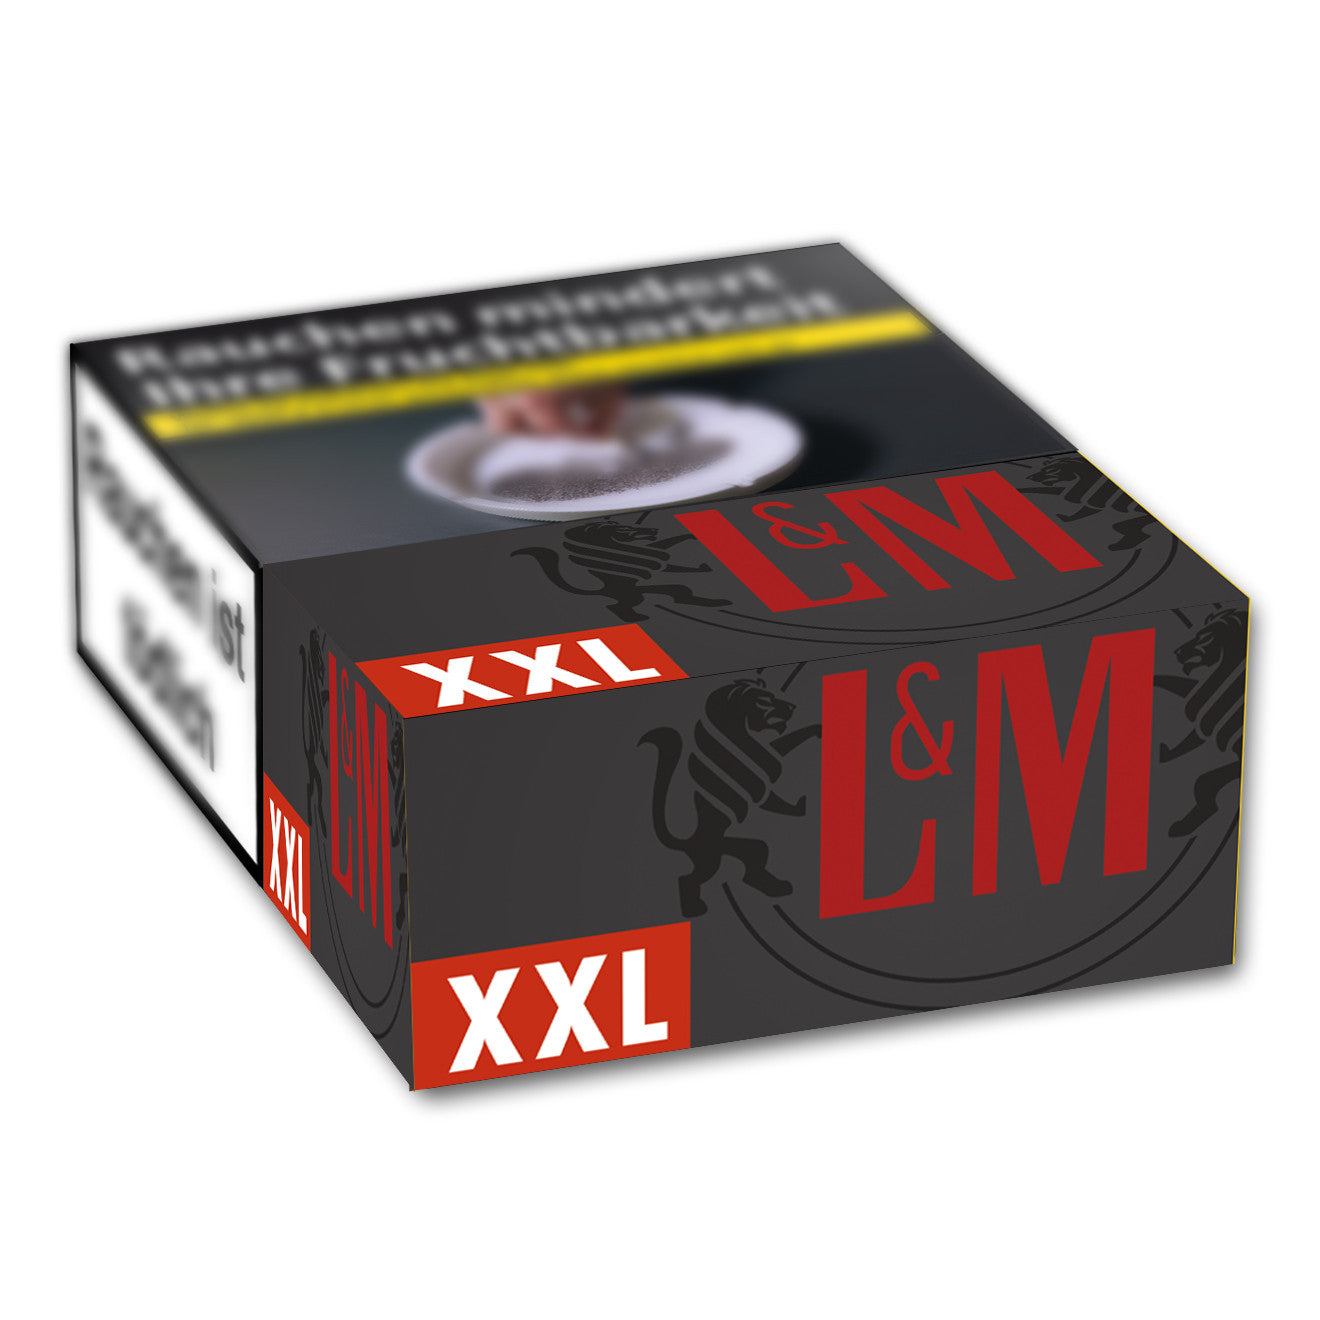 L&M Black Label XL-Box 7,00 (8x23)